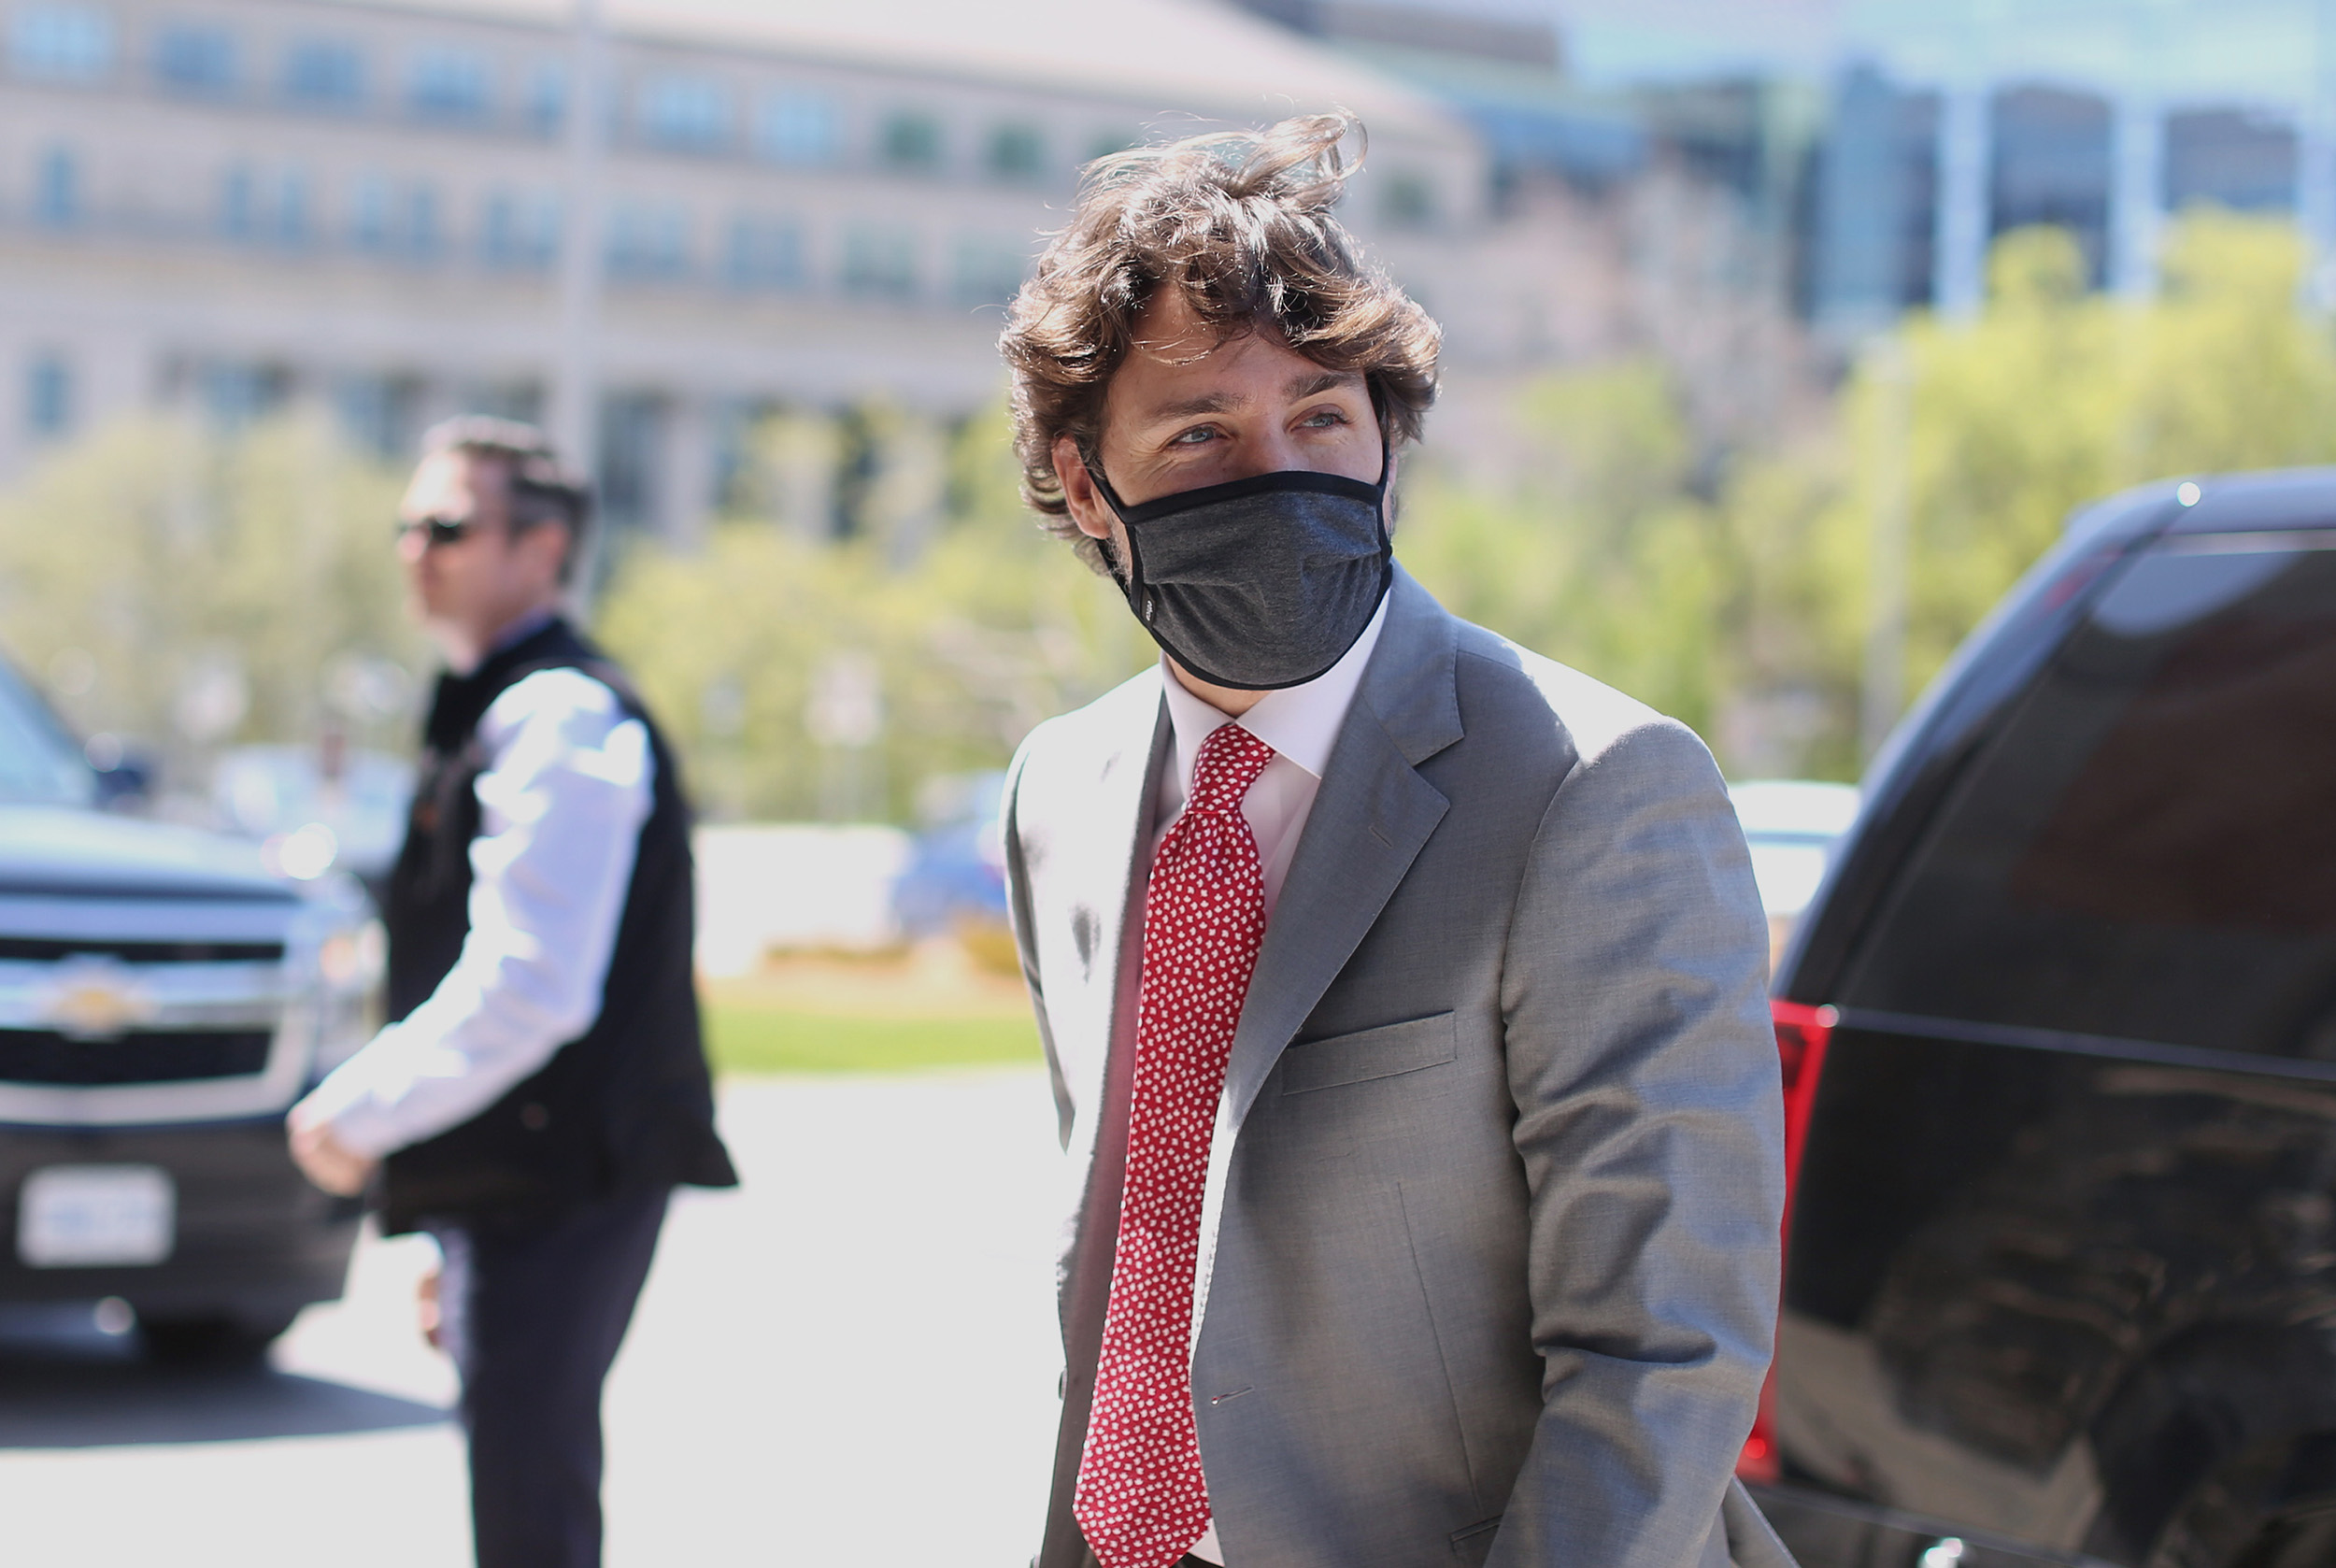 Canadian Prime Minister Justin Trudeau arrives on Parliament Hill to attend the Special Committee meeting on the COVID-19 global pandemic in Ottawa, Canada, on Wednesday, May 20.